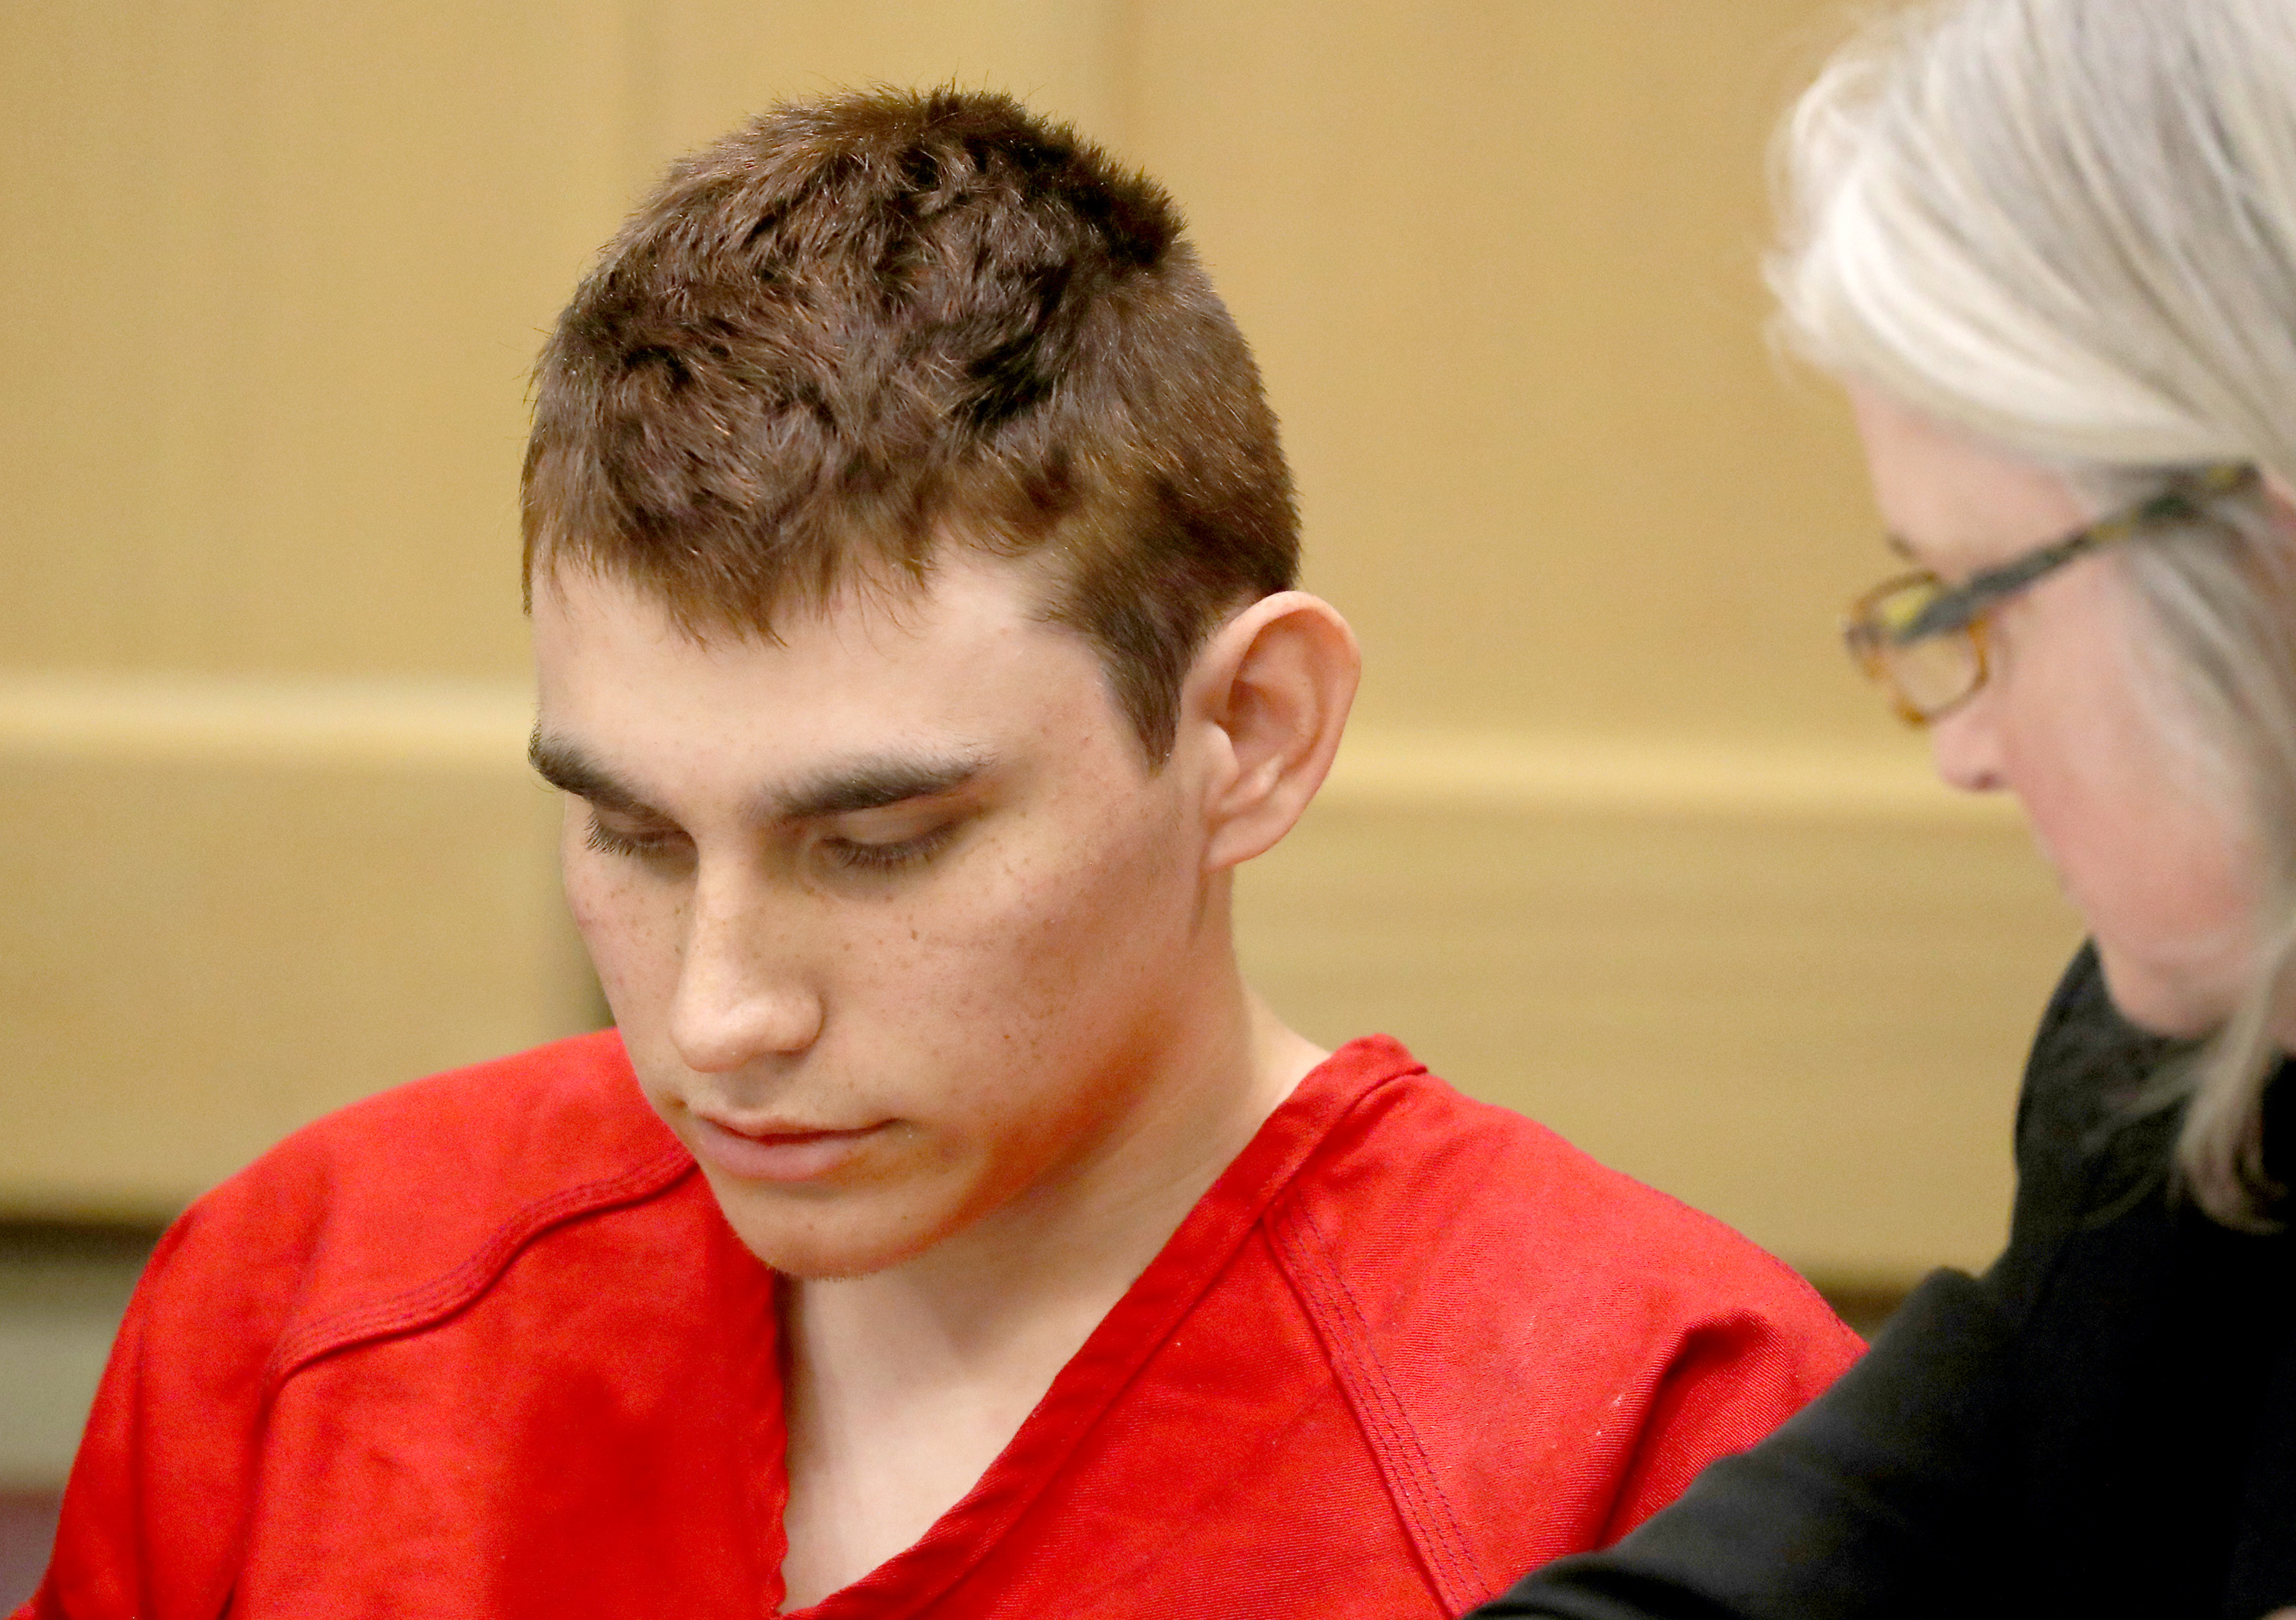 Nikolas Cruz, who faces 17 charges of premeditated murder in the mass shooting at Marjory Stoneman Douglas High School in Parkland, Fla., appears in court for a status hearing on Feb. 19, 2018.